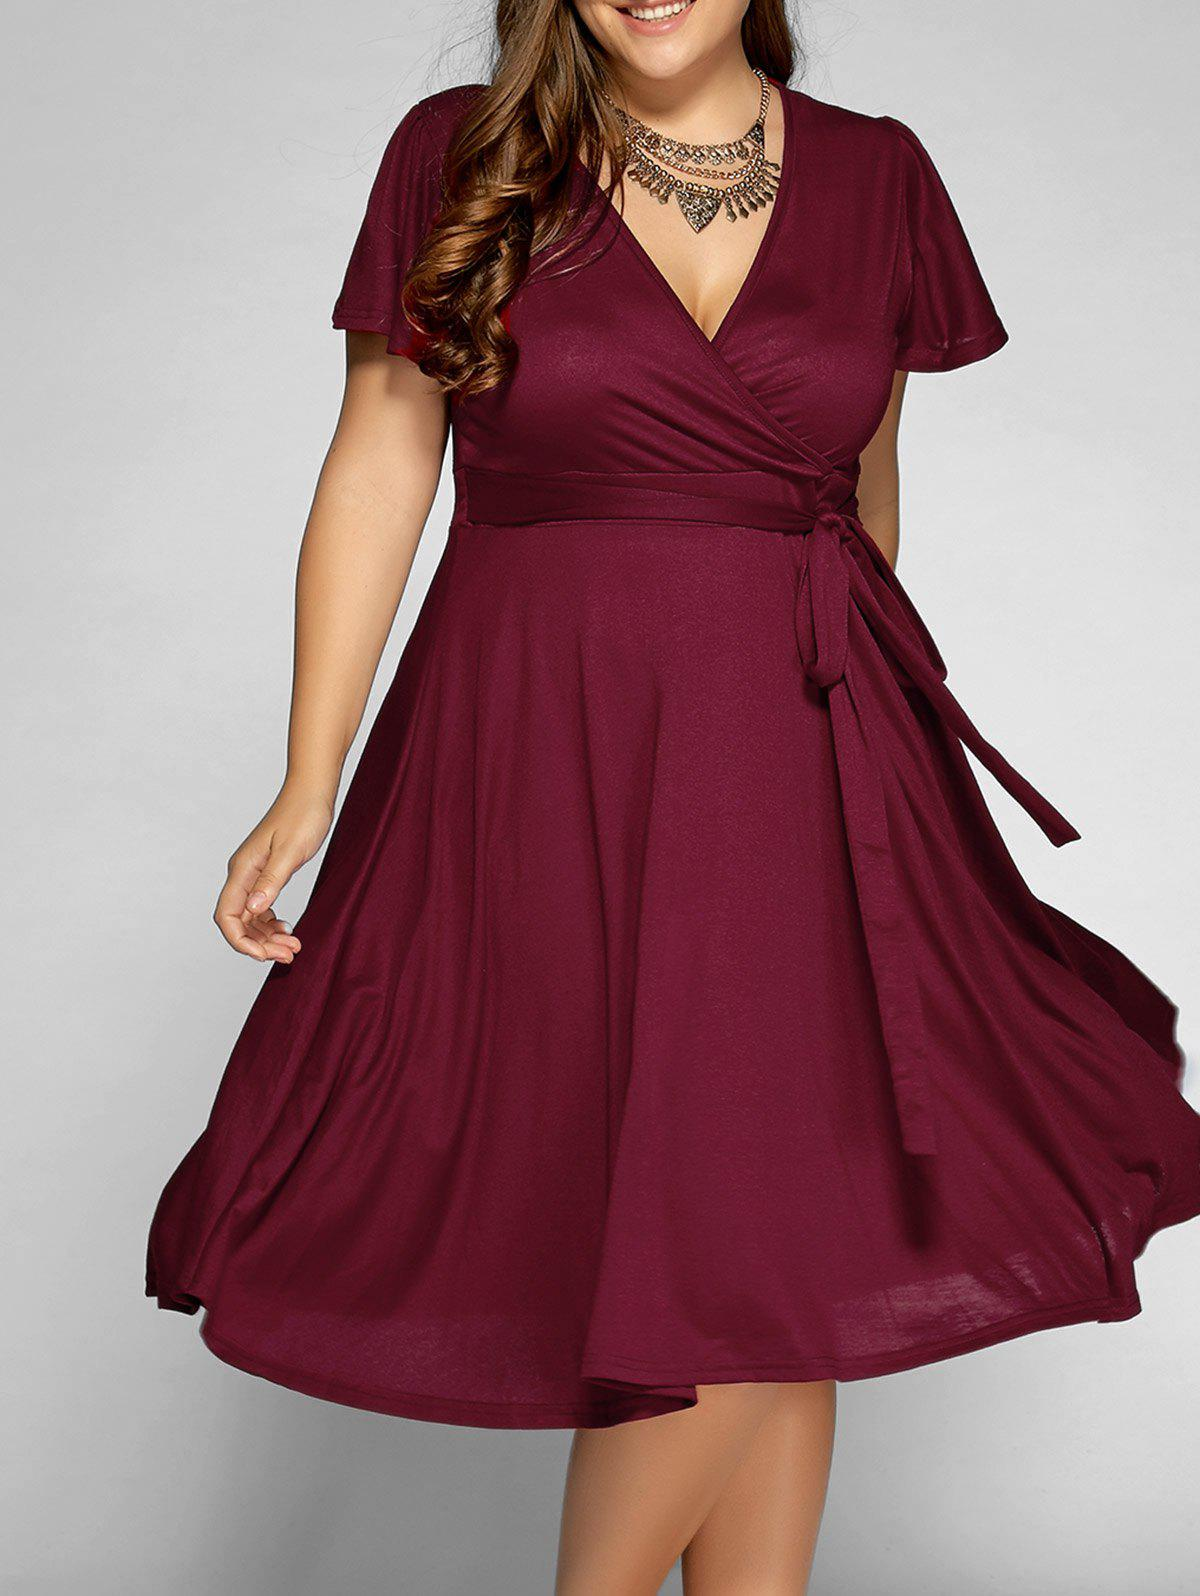 Low Cut A Line Plus Size Surplice Front Tie Swing DressWOMEN<br><br>Size: 3XL; Color: WINE RED; Style: Casual; Material: Cotton,Polyester; Silhouette: A-Line; Dresses Length: Mid-Calf; Neckline: V-Neck; Sleeve Length: Short Sleeves; Pattern Type: Solid; With Belt: No; Season: Summer; Weight: 0.5260kg; Package Contents: 1 x Dress;